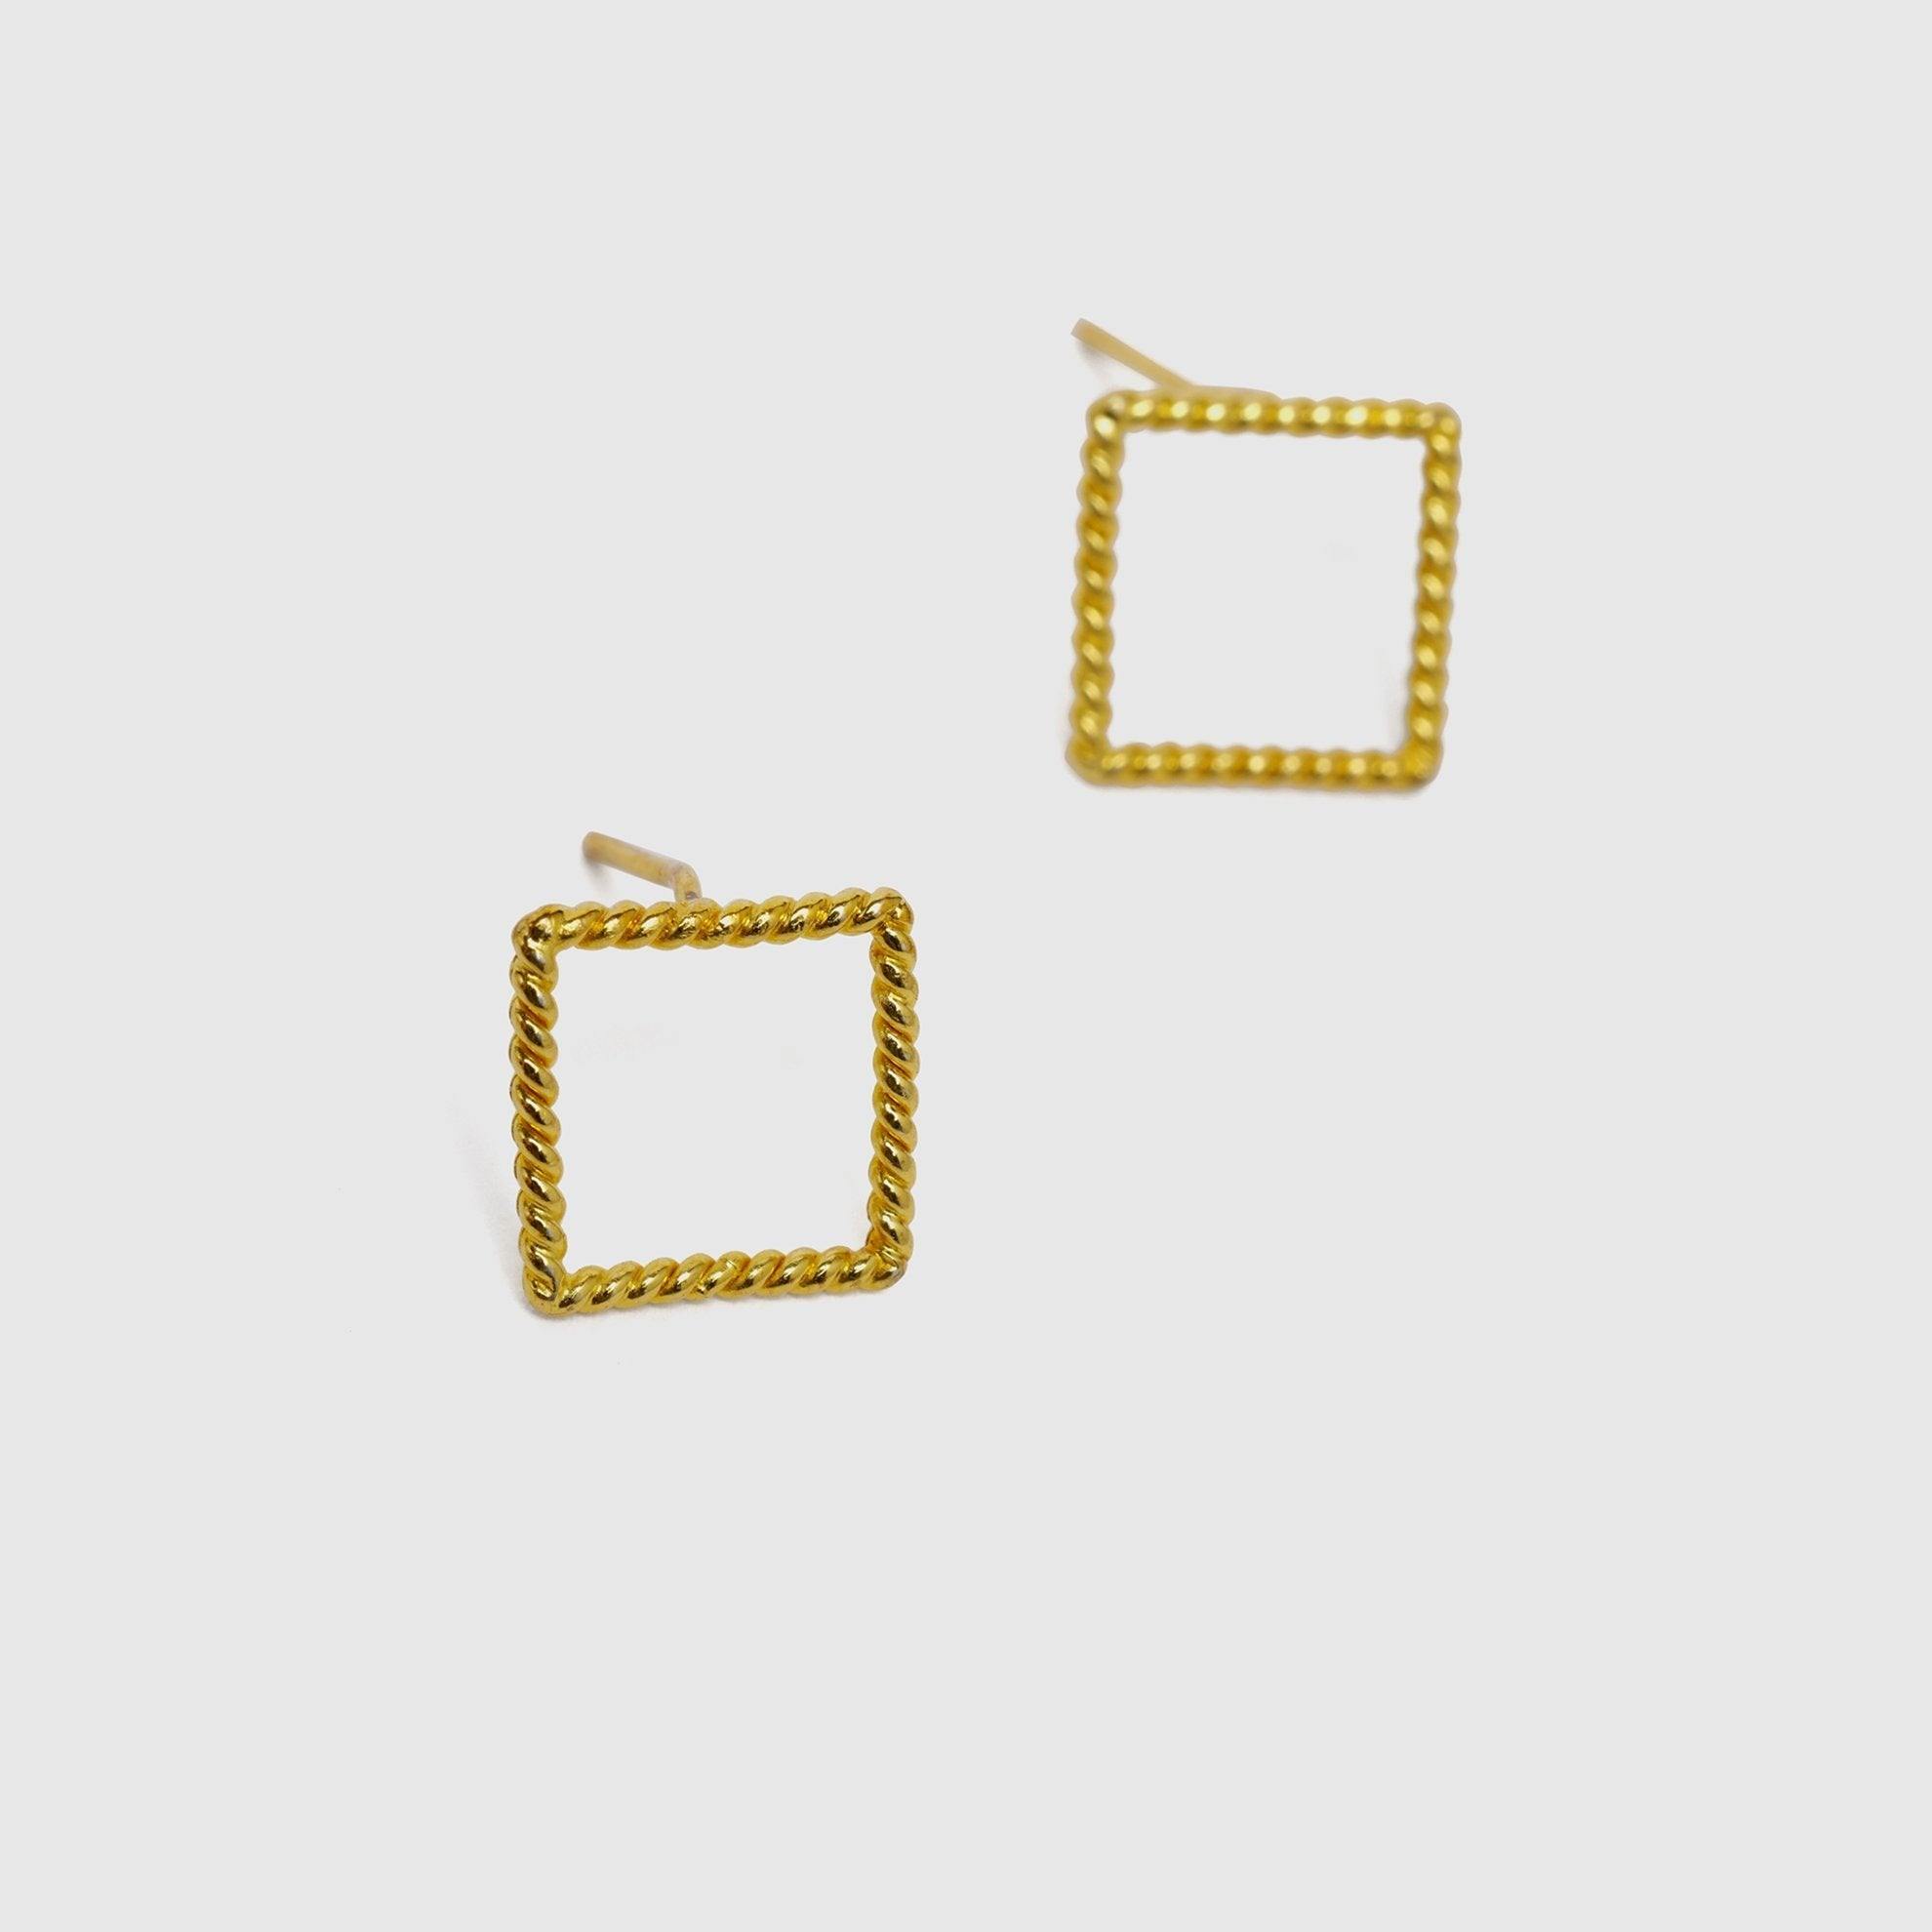 Square Stud Earrings Detailed Look